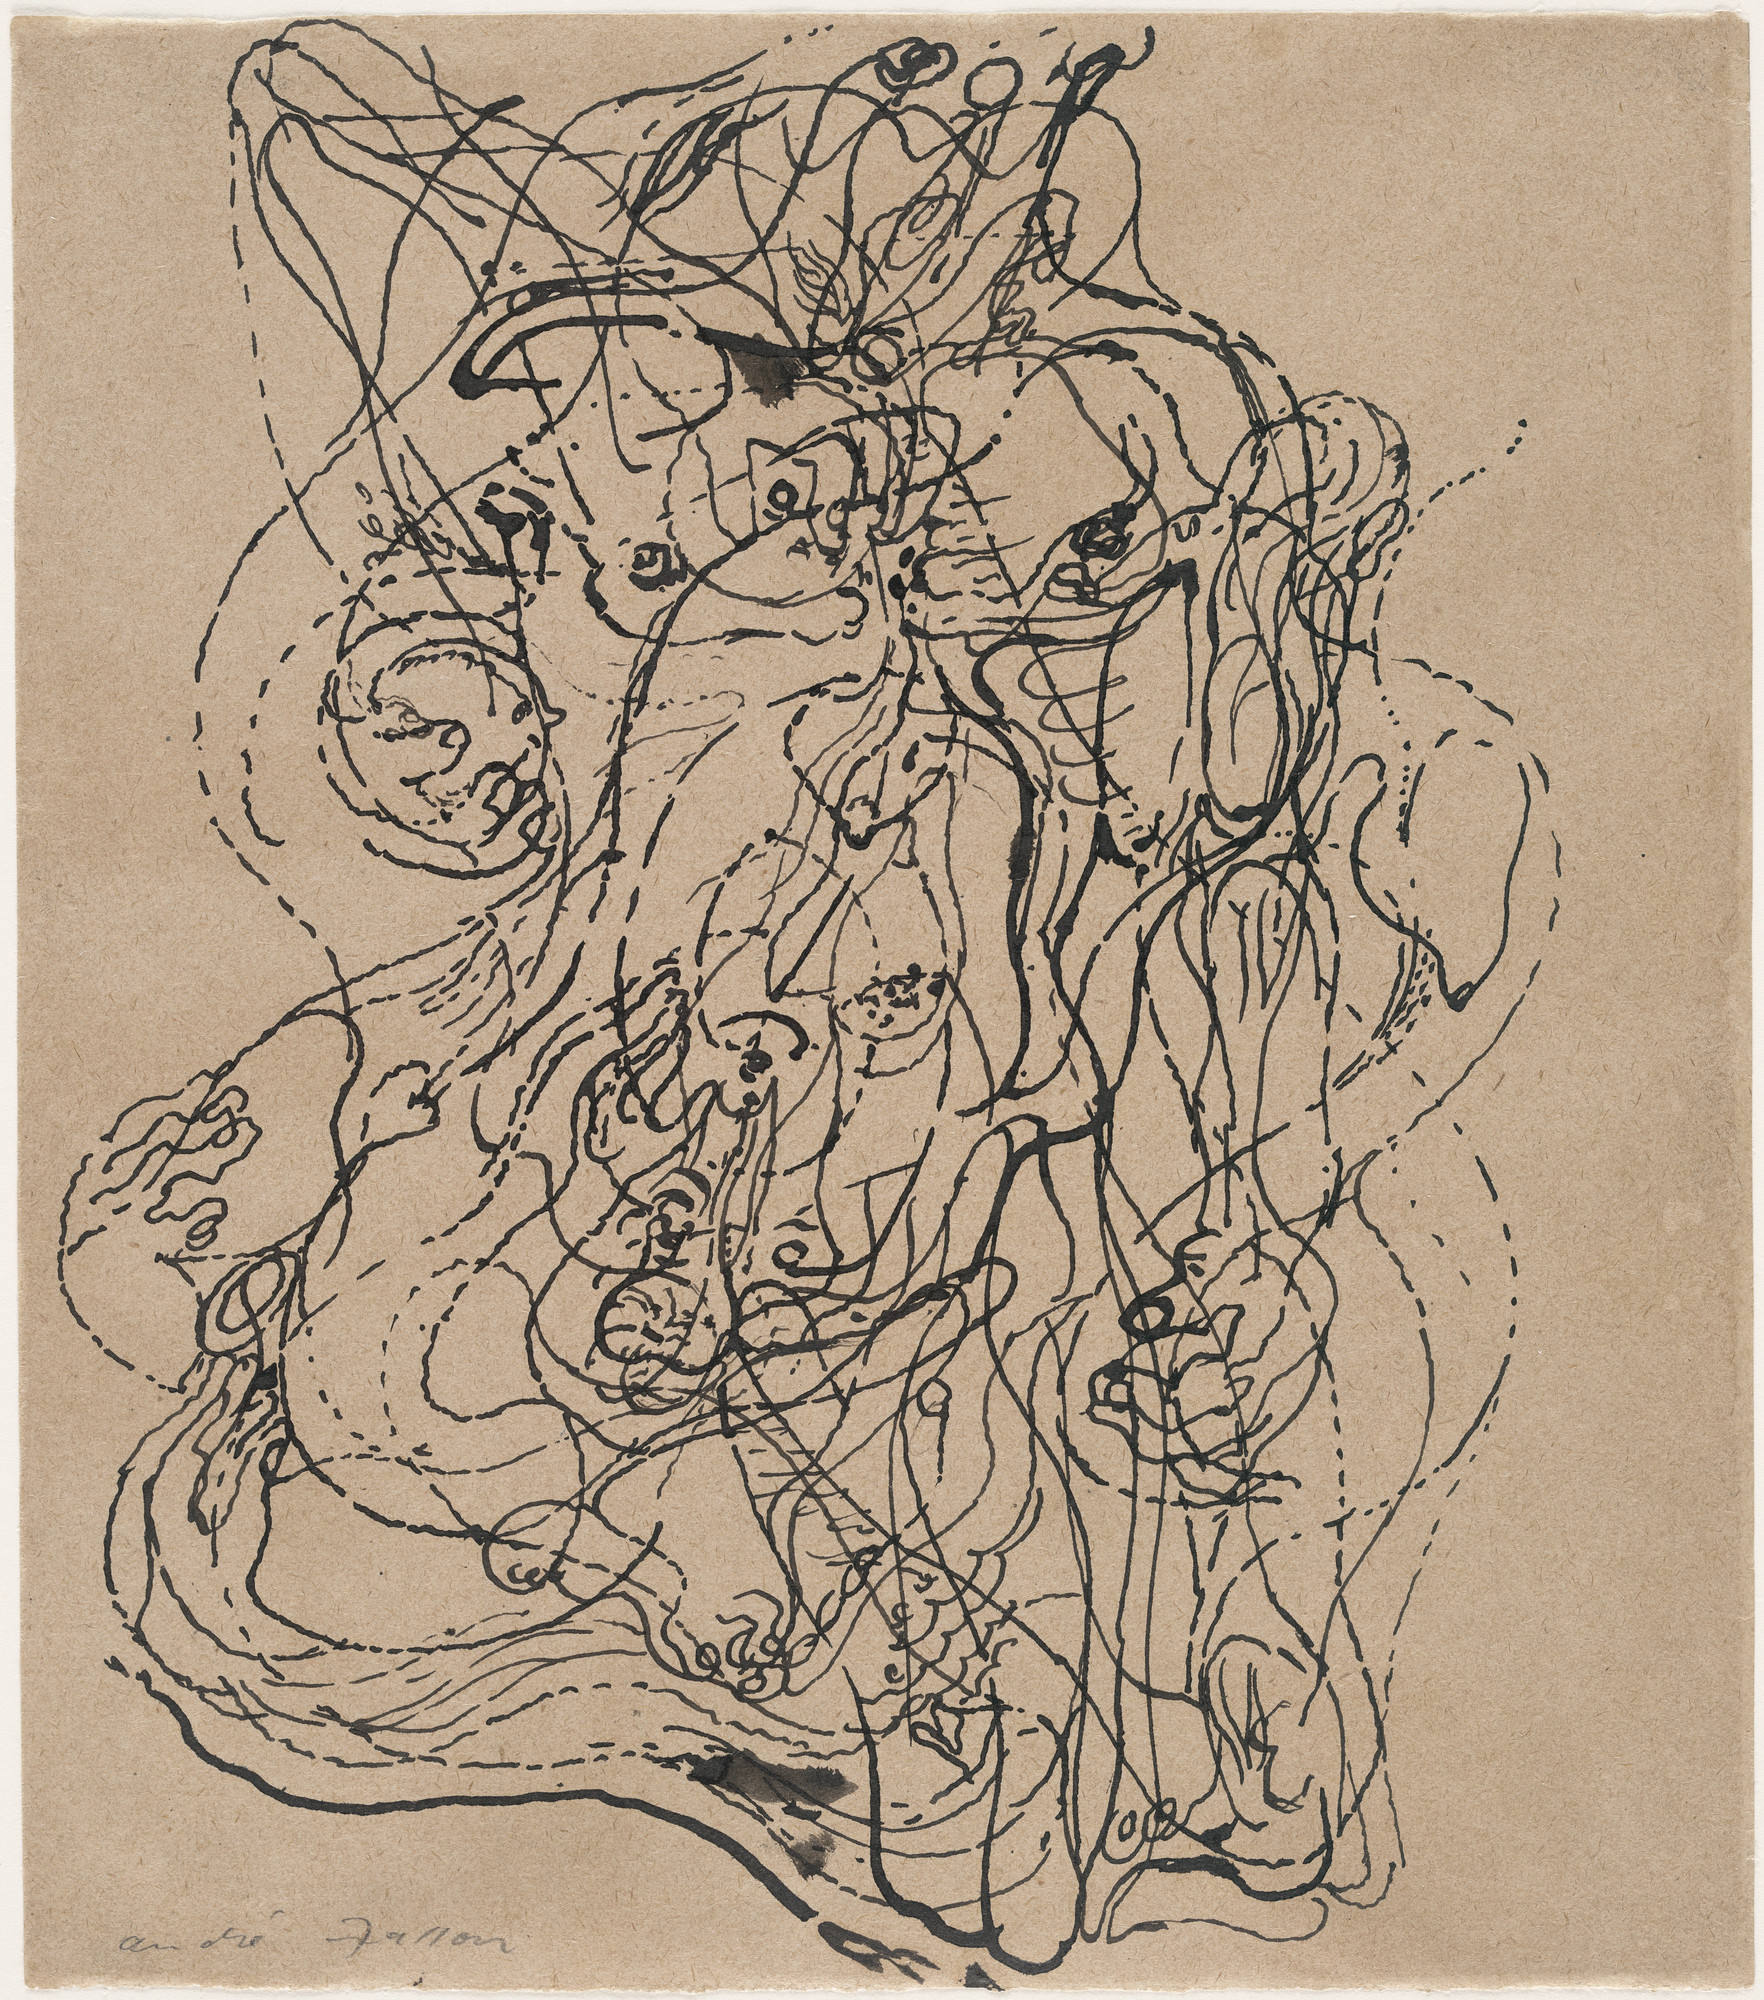 André Masson. Automatic Drawing. 1924. Ink on paper, 23.5 x 20.6 cm. Museum of Modern Art, New York. - Surrealism